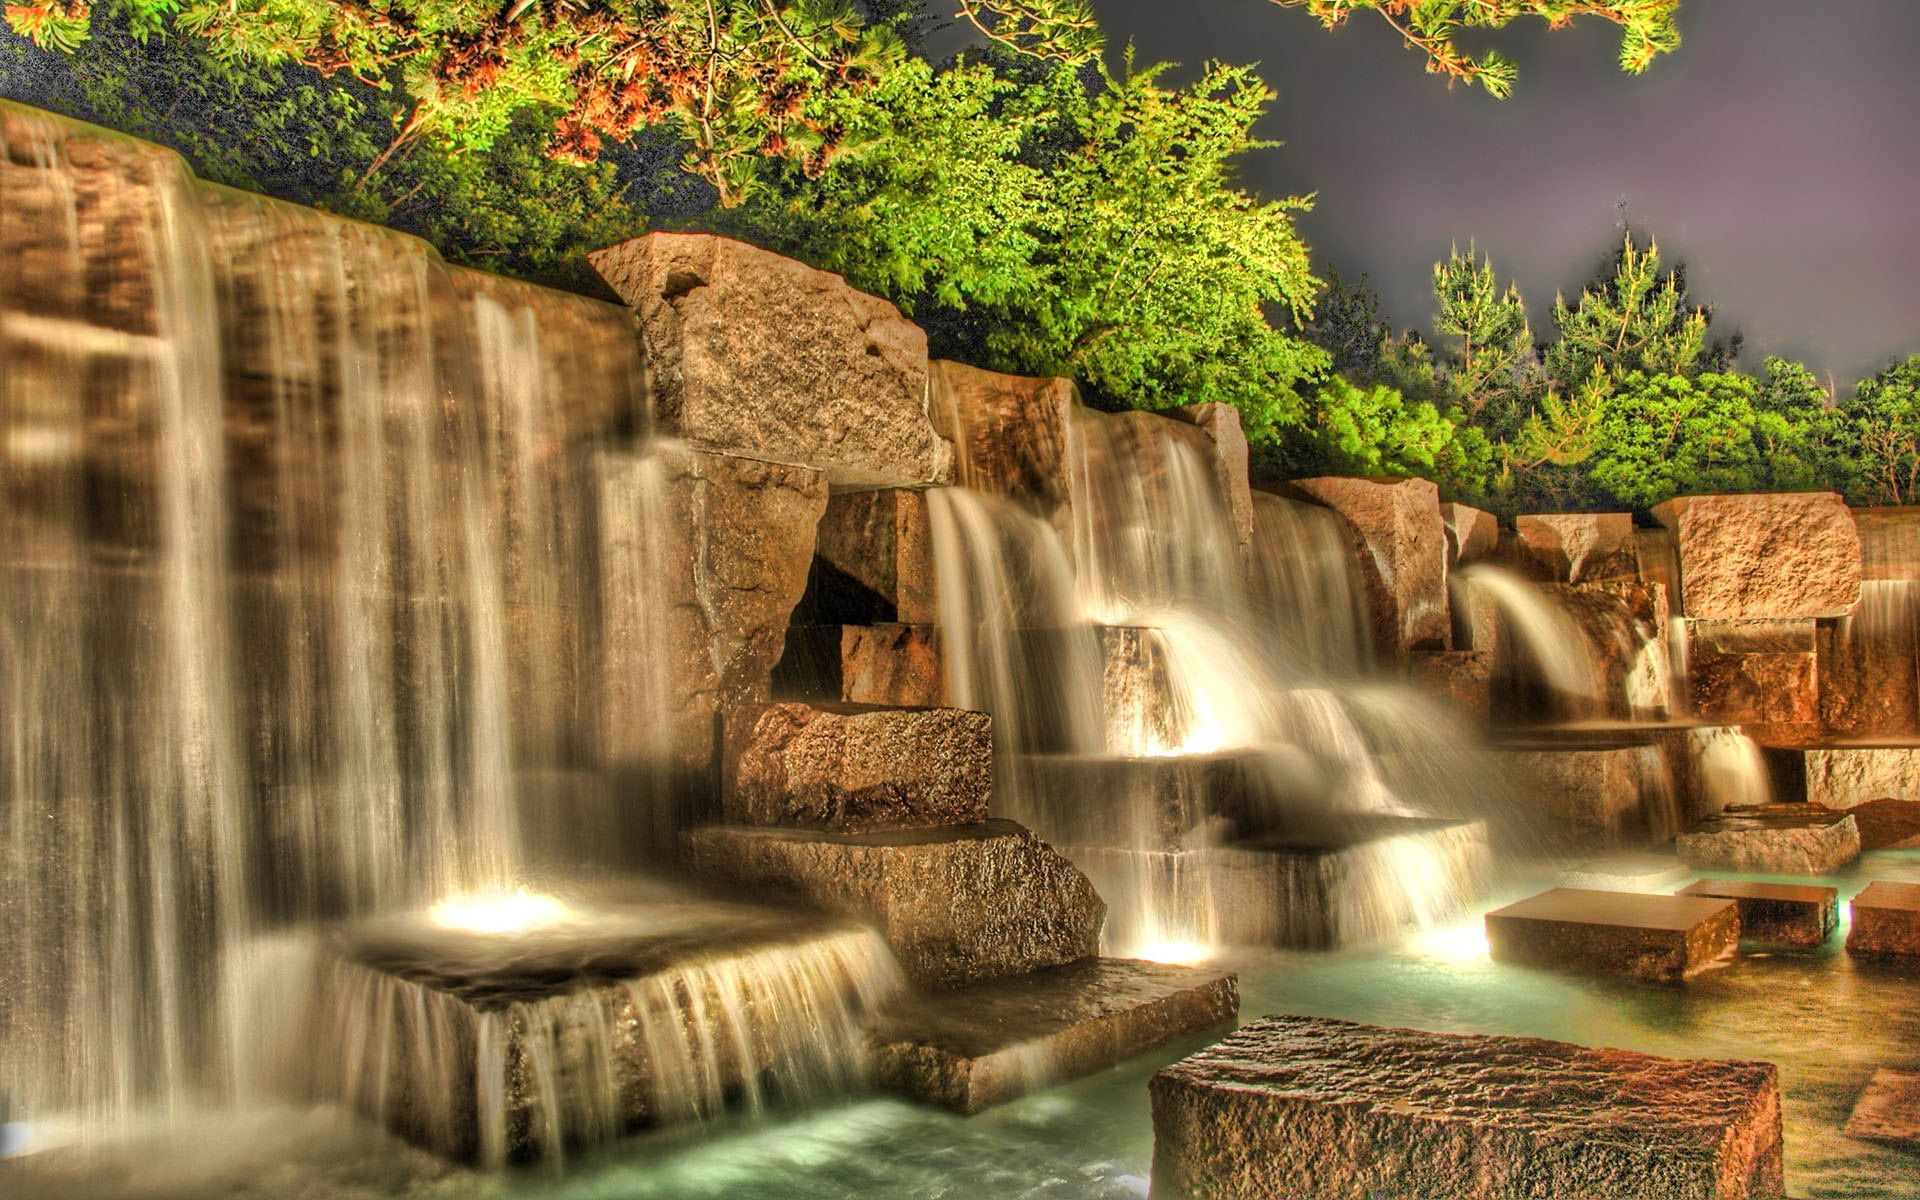 Hd Live Wallpaper For Pc Water Live Wallpaper Waterfall Wallpaper Landscape Wallpaper